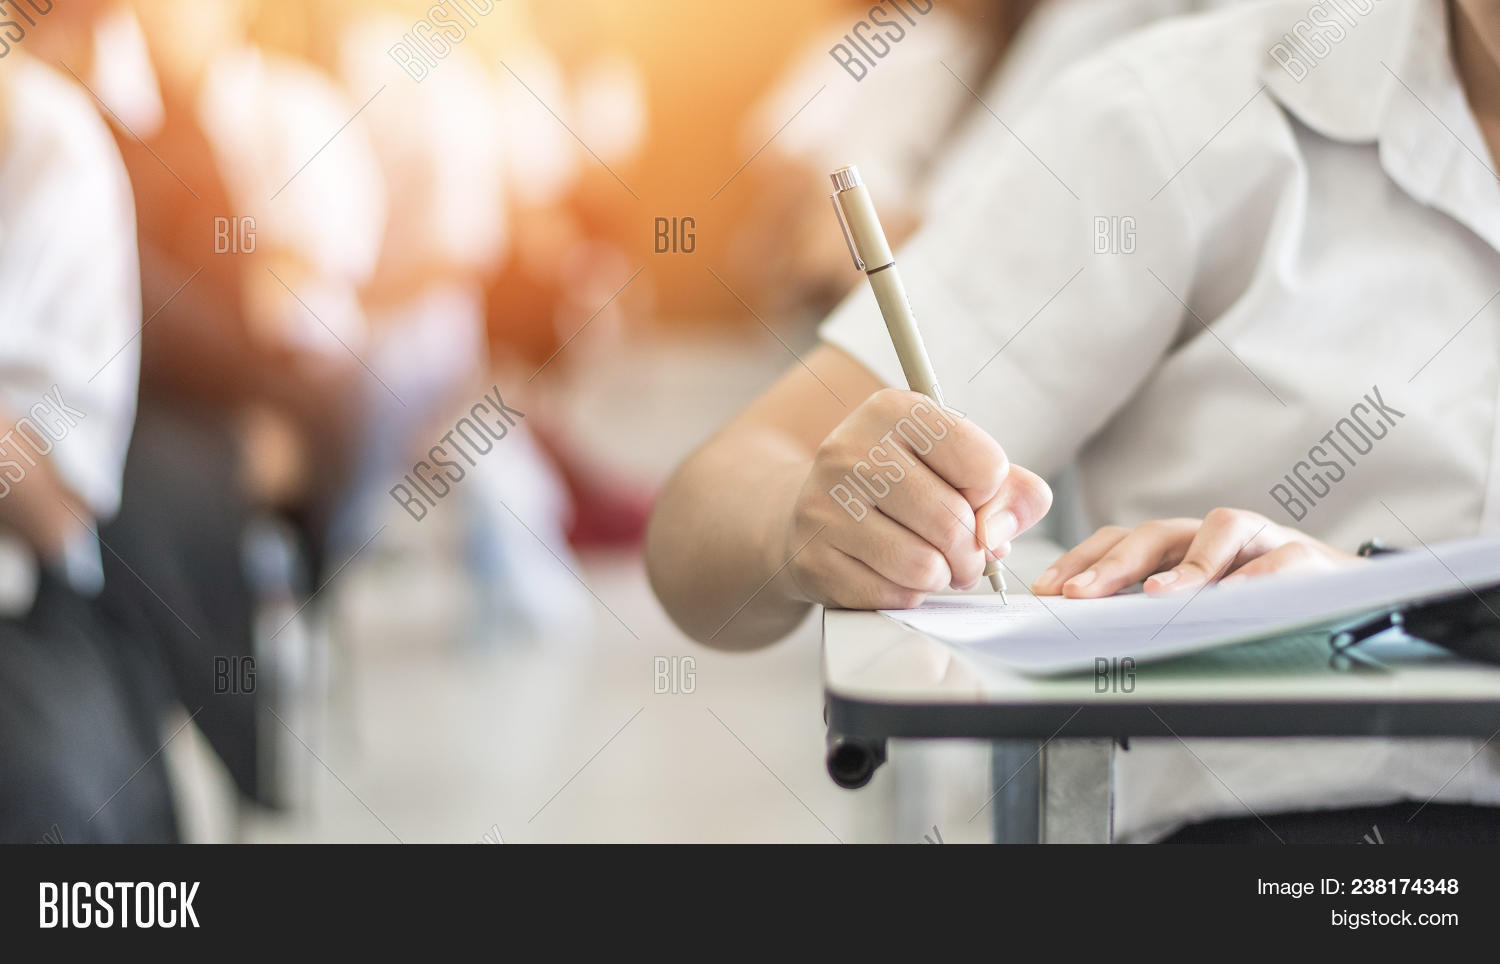 Exam With School Student Having A Educational Test, Thinking Hard, Writing Answer In Classroom For U